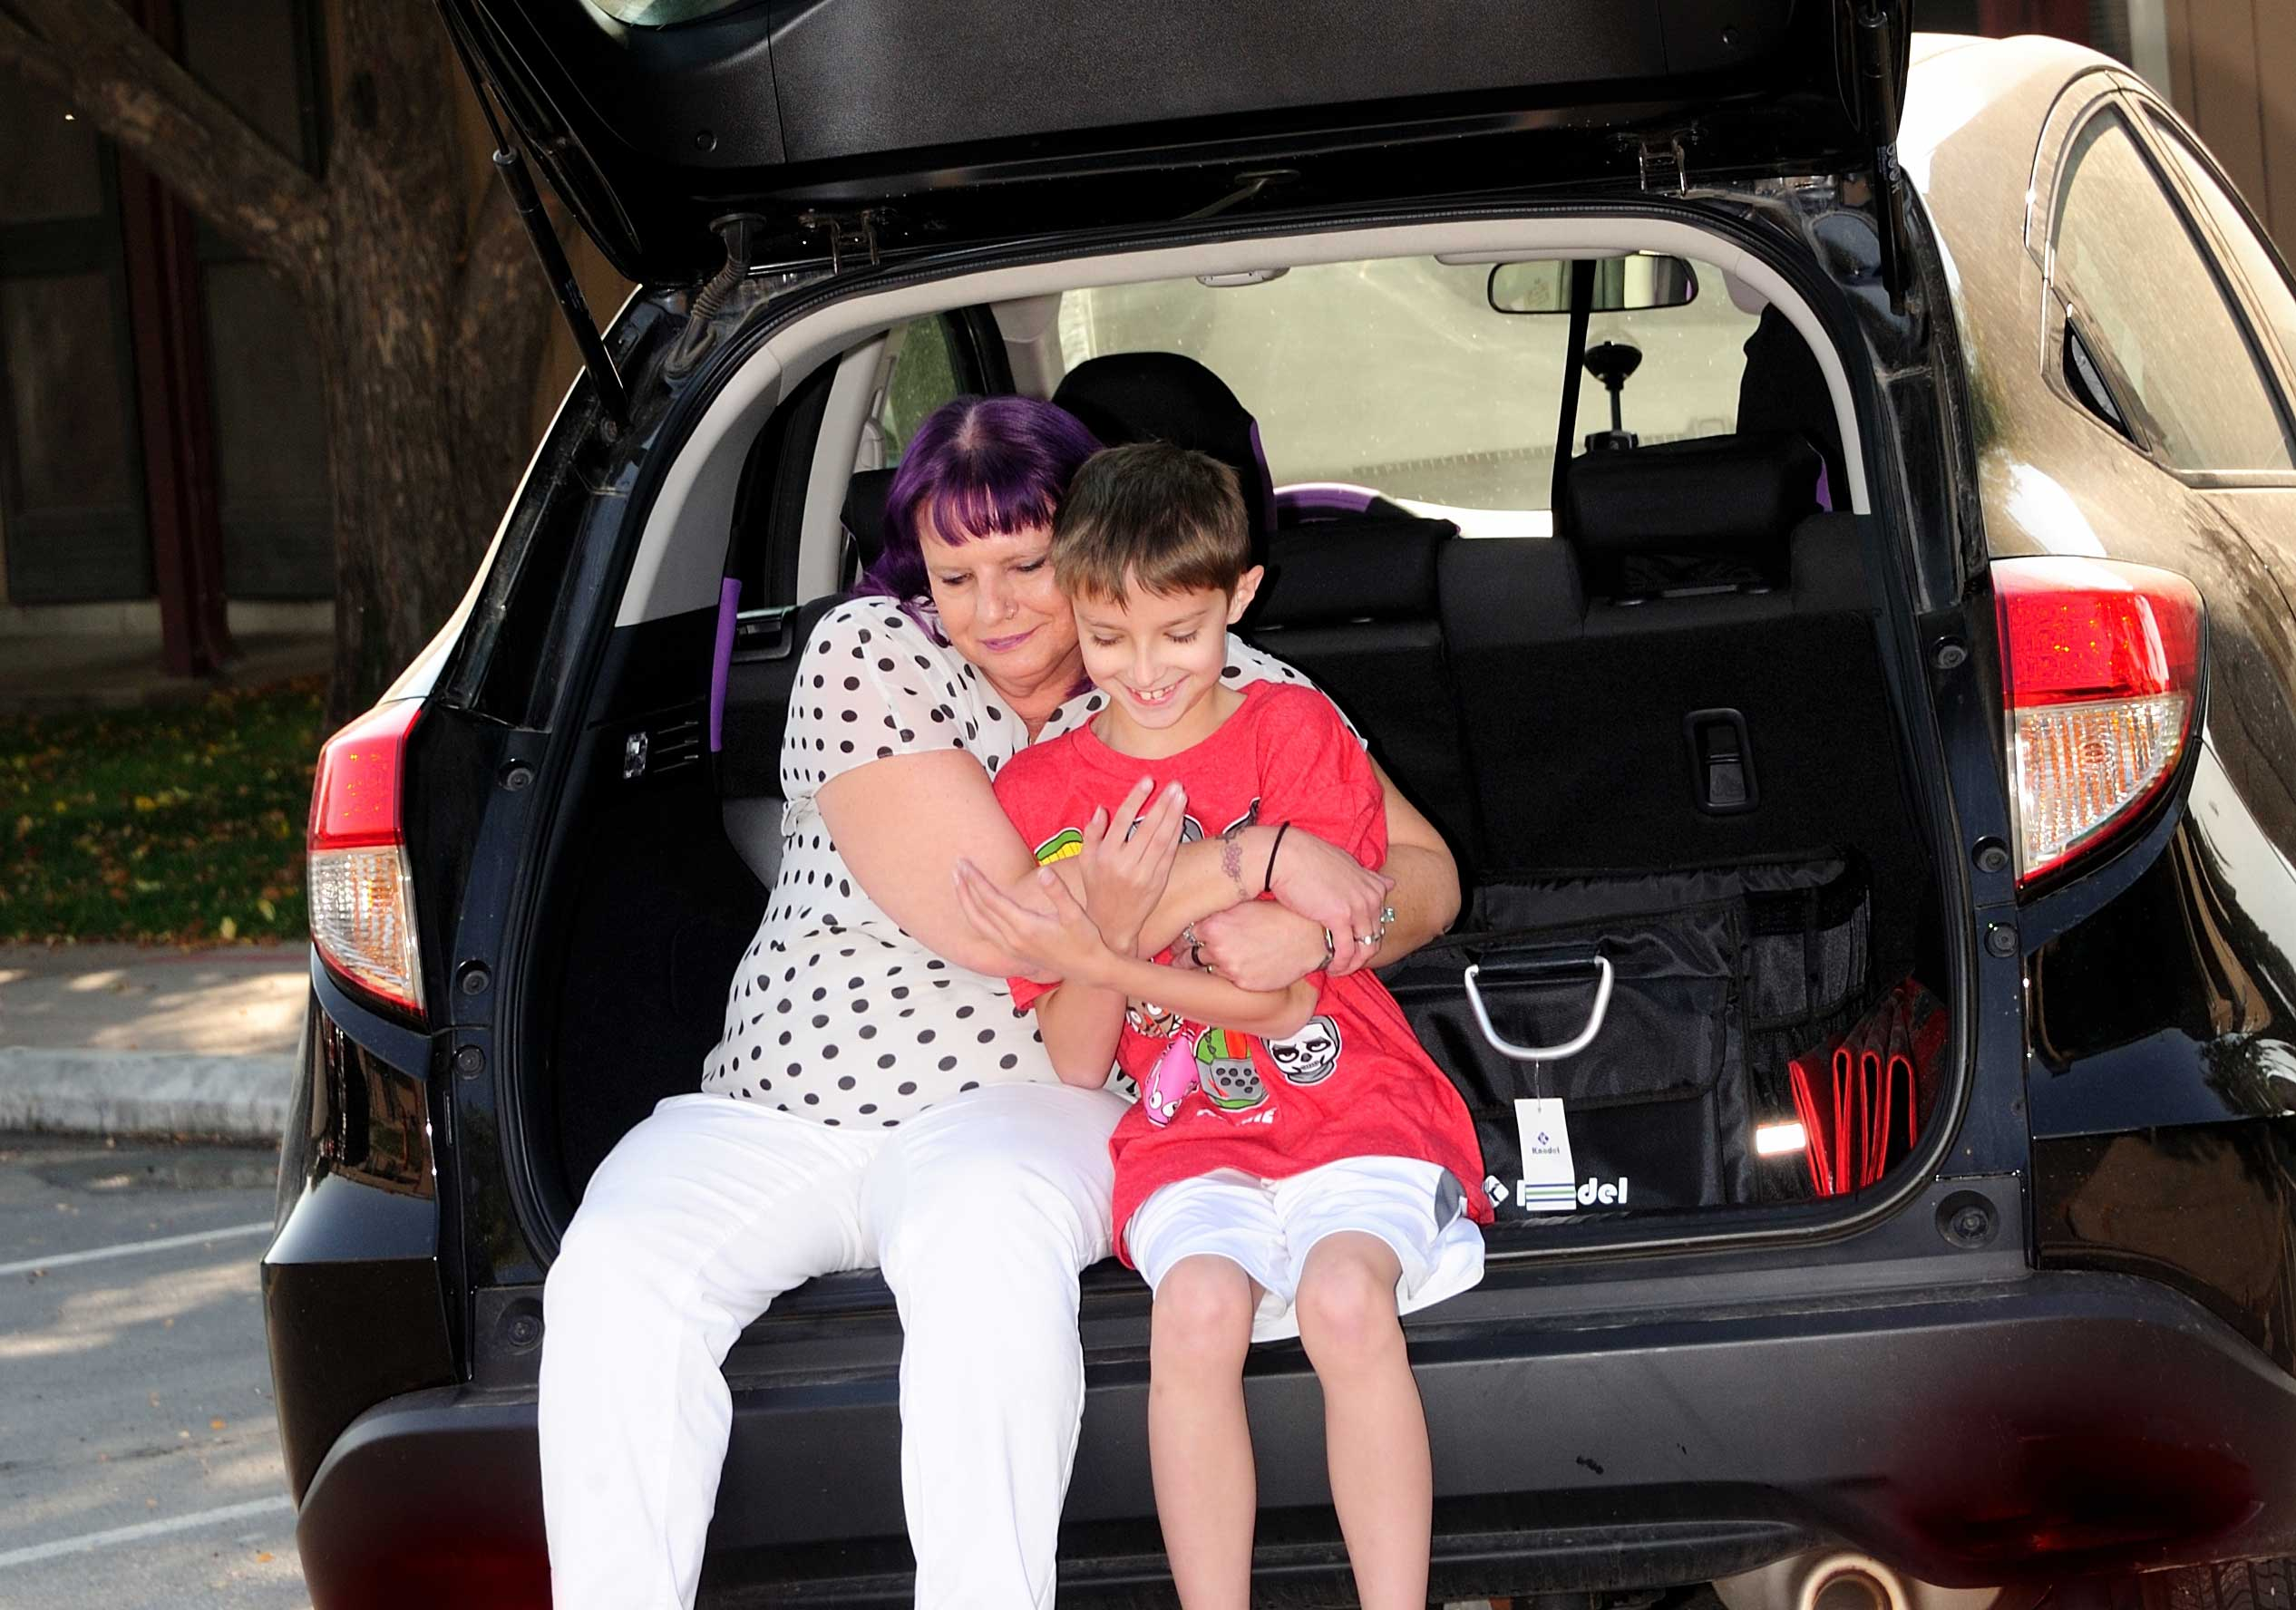 Amber Person hugging child in back of a vehicle